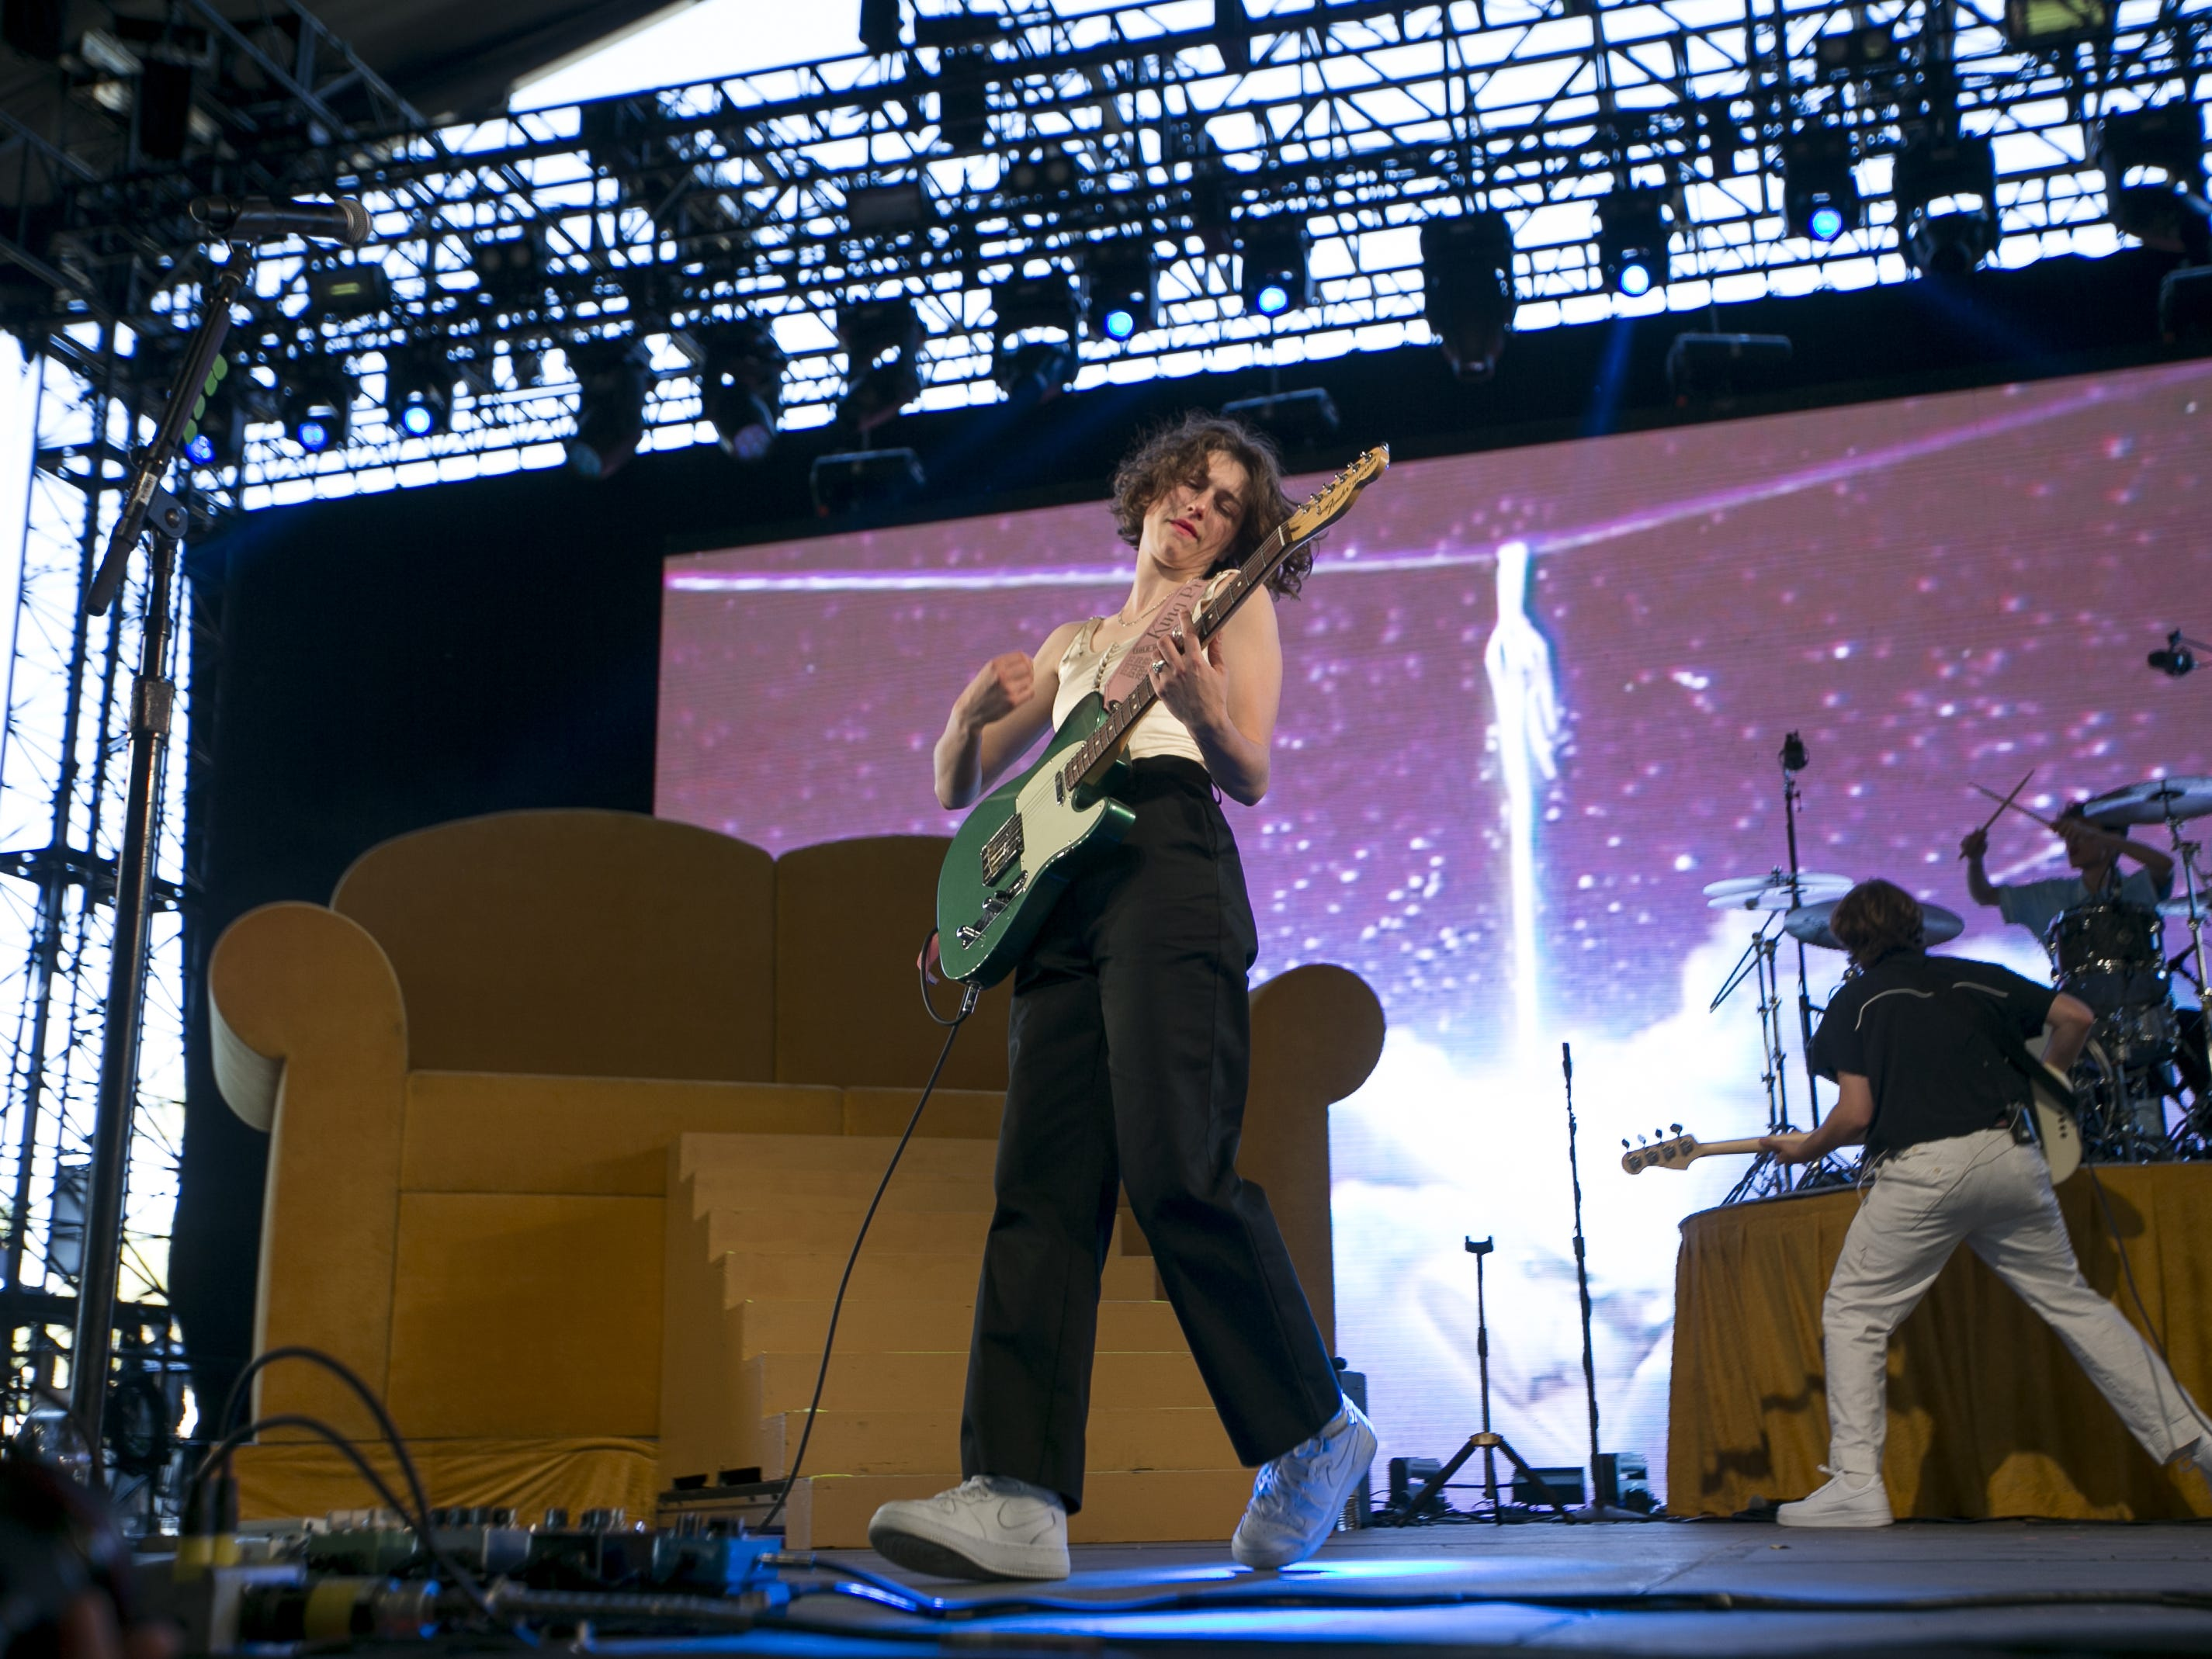 King Princess performs on the Mojave stage at the Coachella Valley Music and Arts Festival in Indio, Calif. on April 12, 2019.